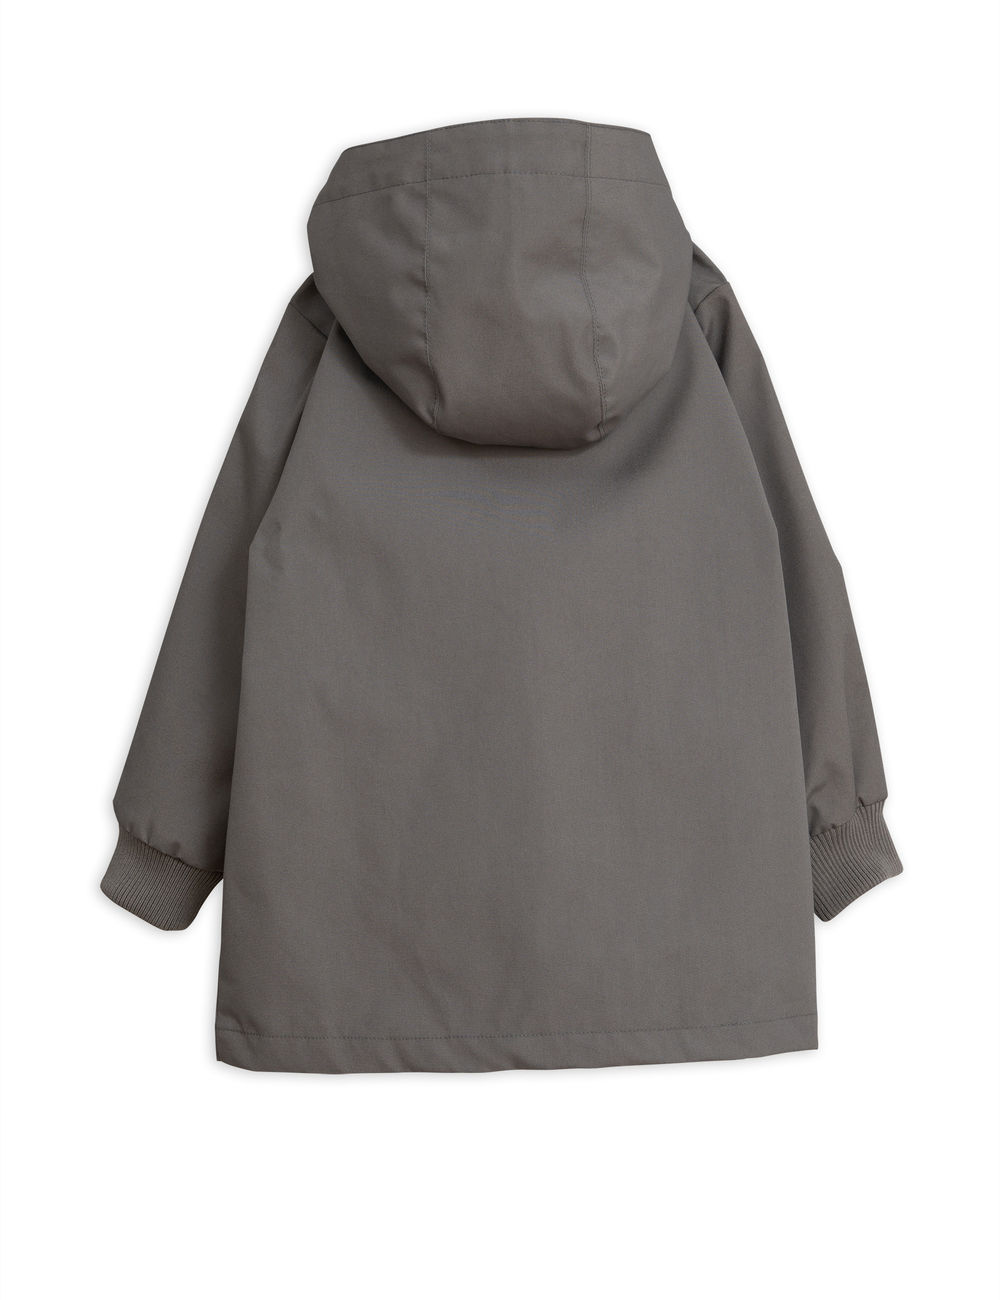 MINI RODINI PICO JACKET, GREY